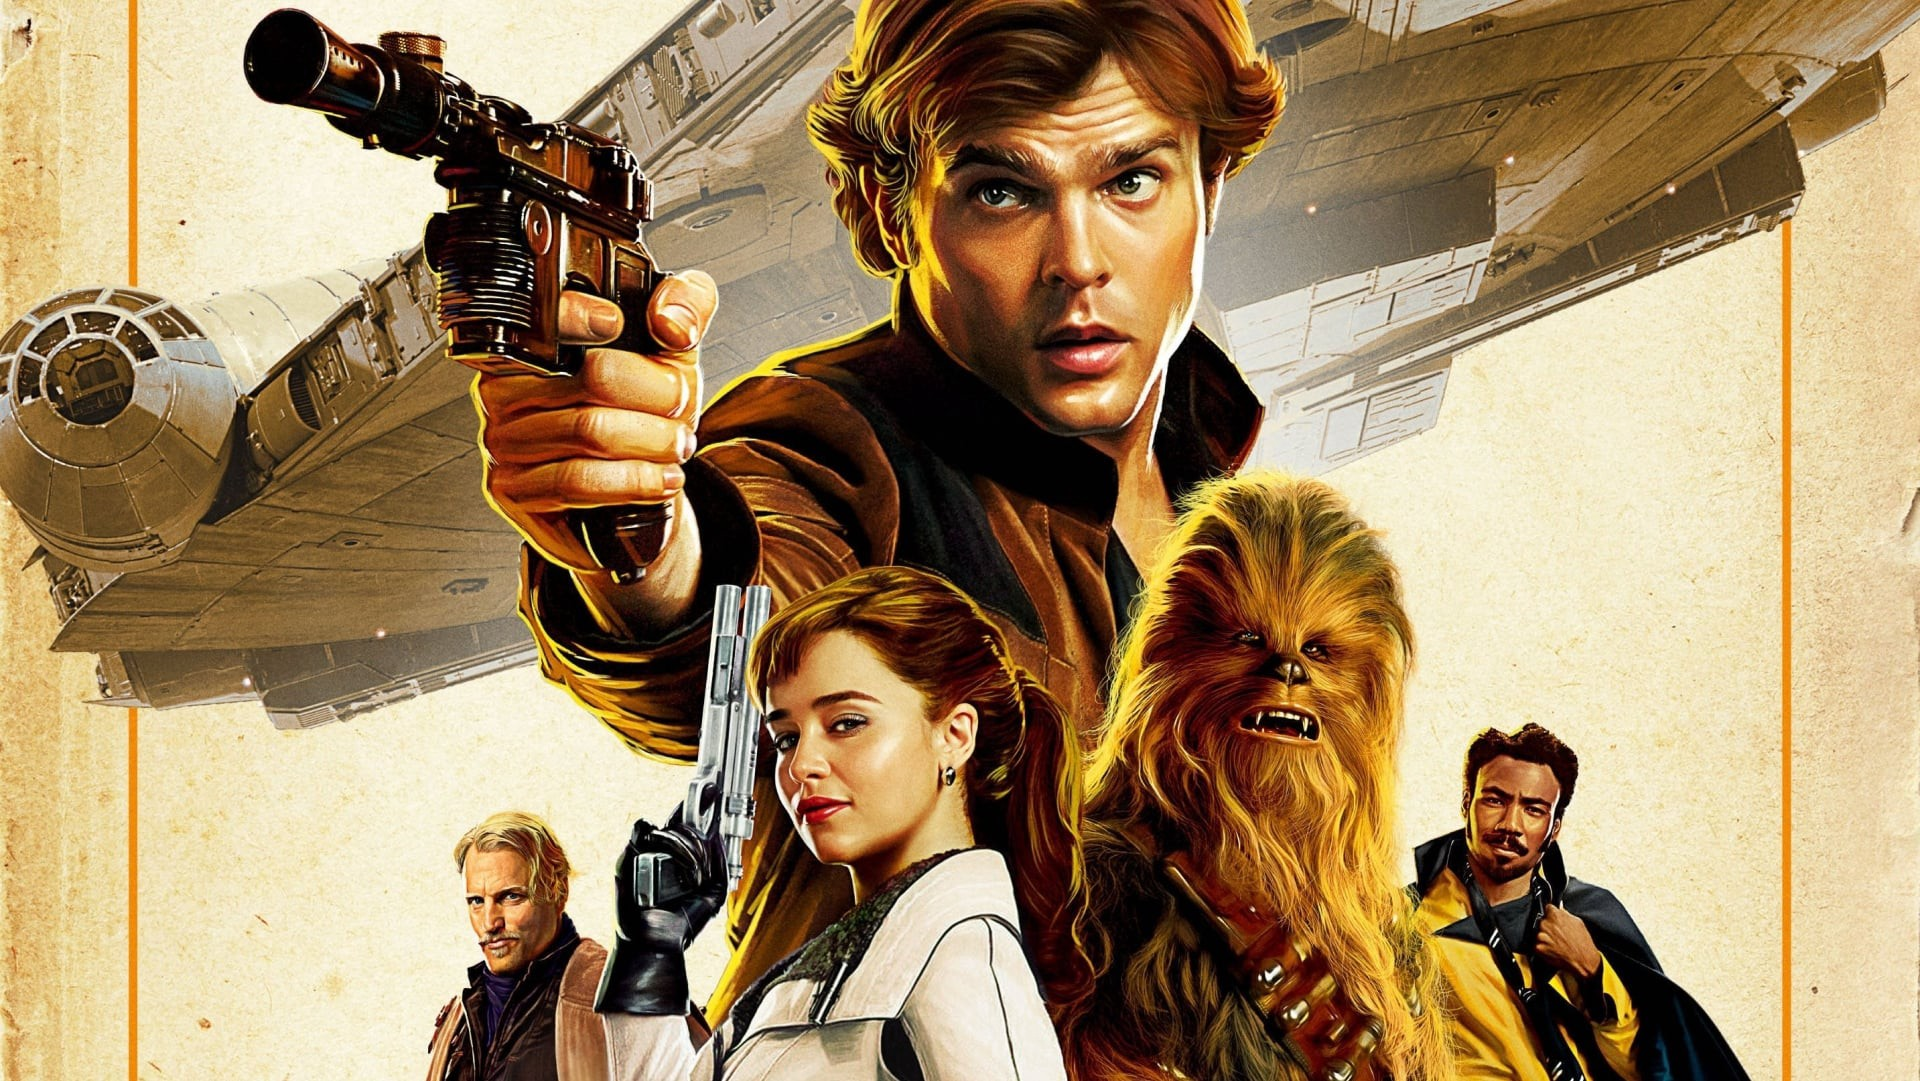 watch solo star wars movie online free